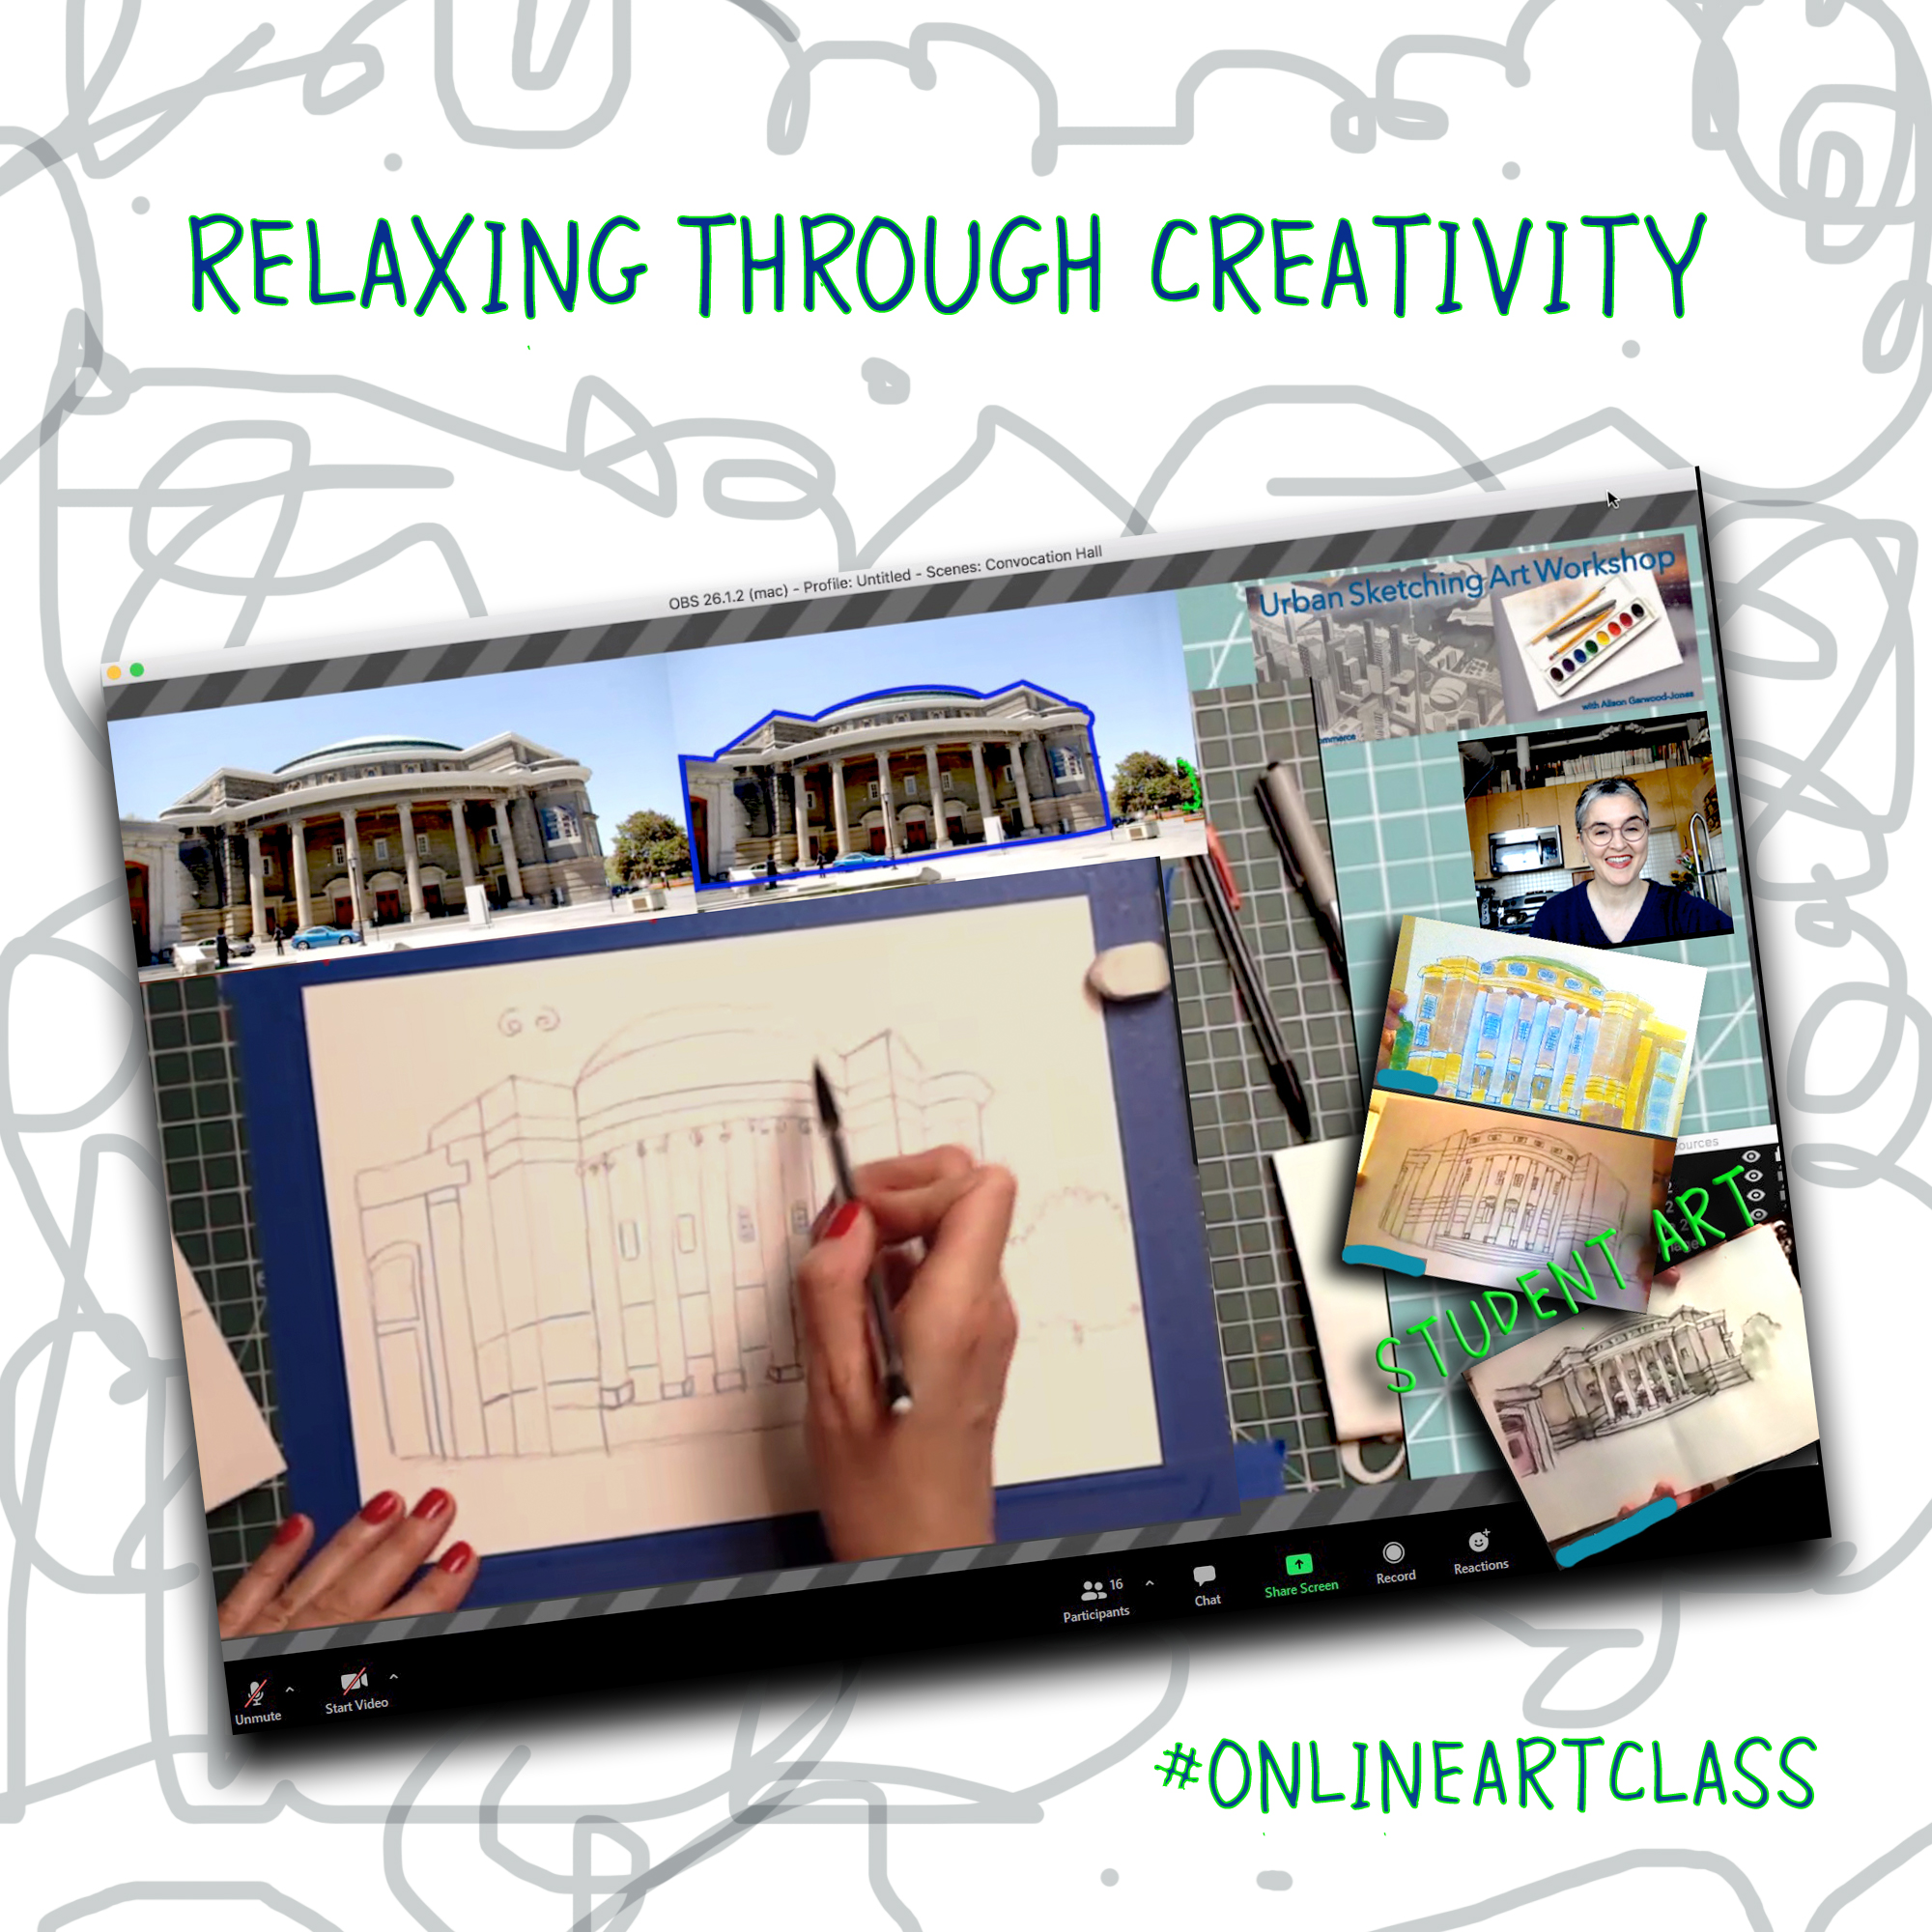 Online Art Classes by Alison Garwood-Jones